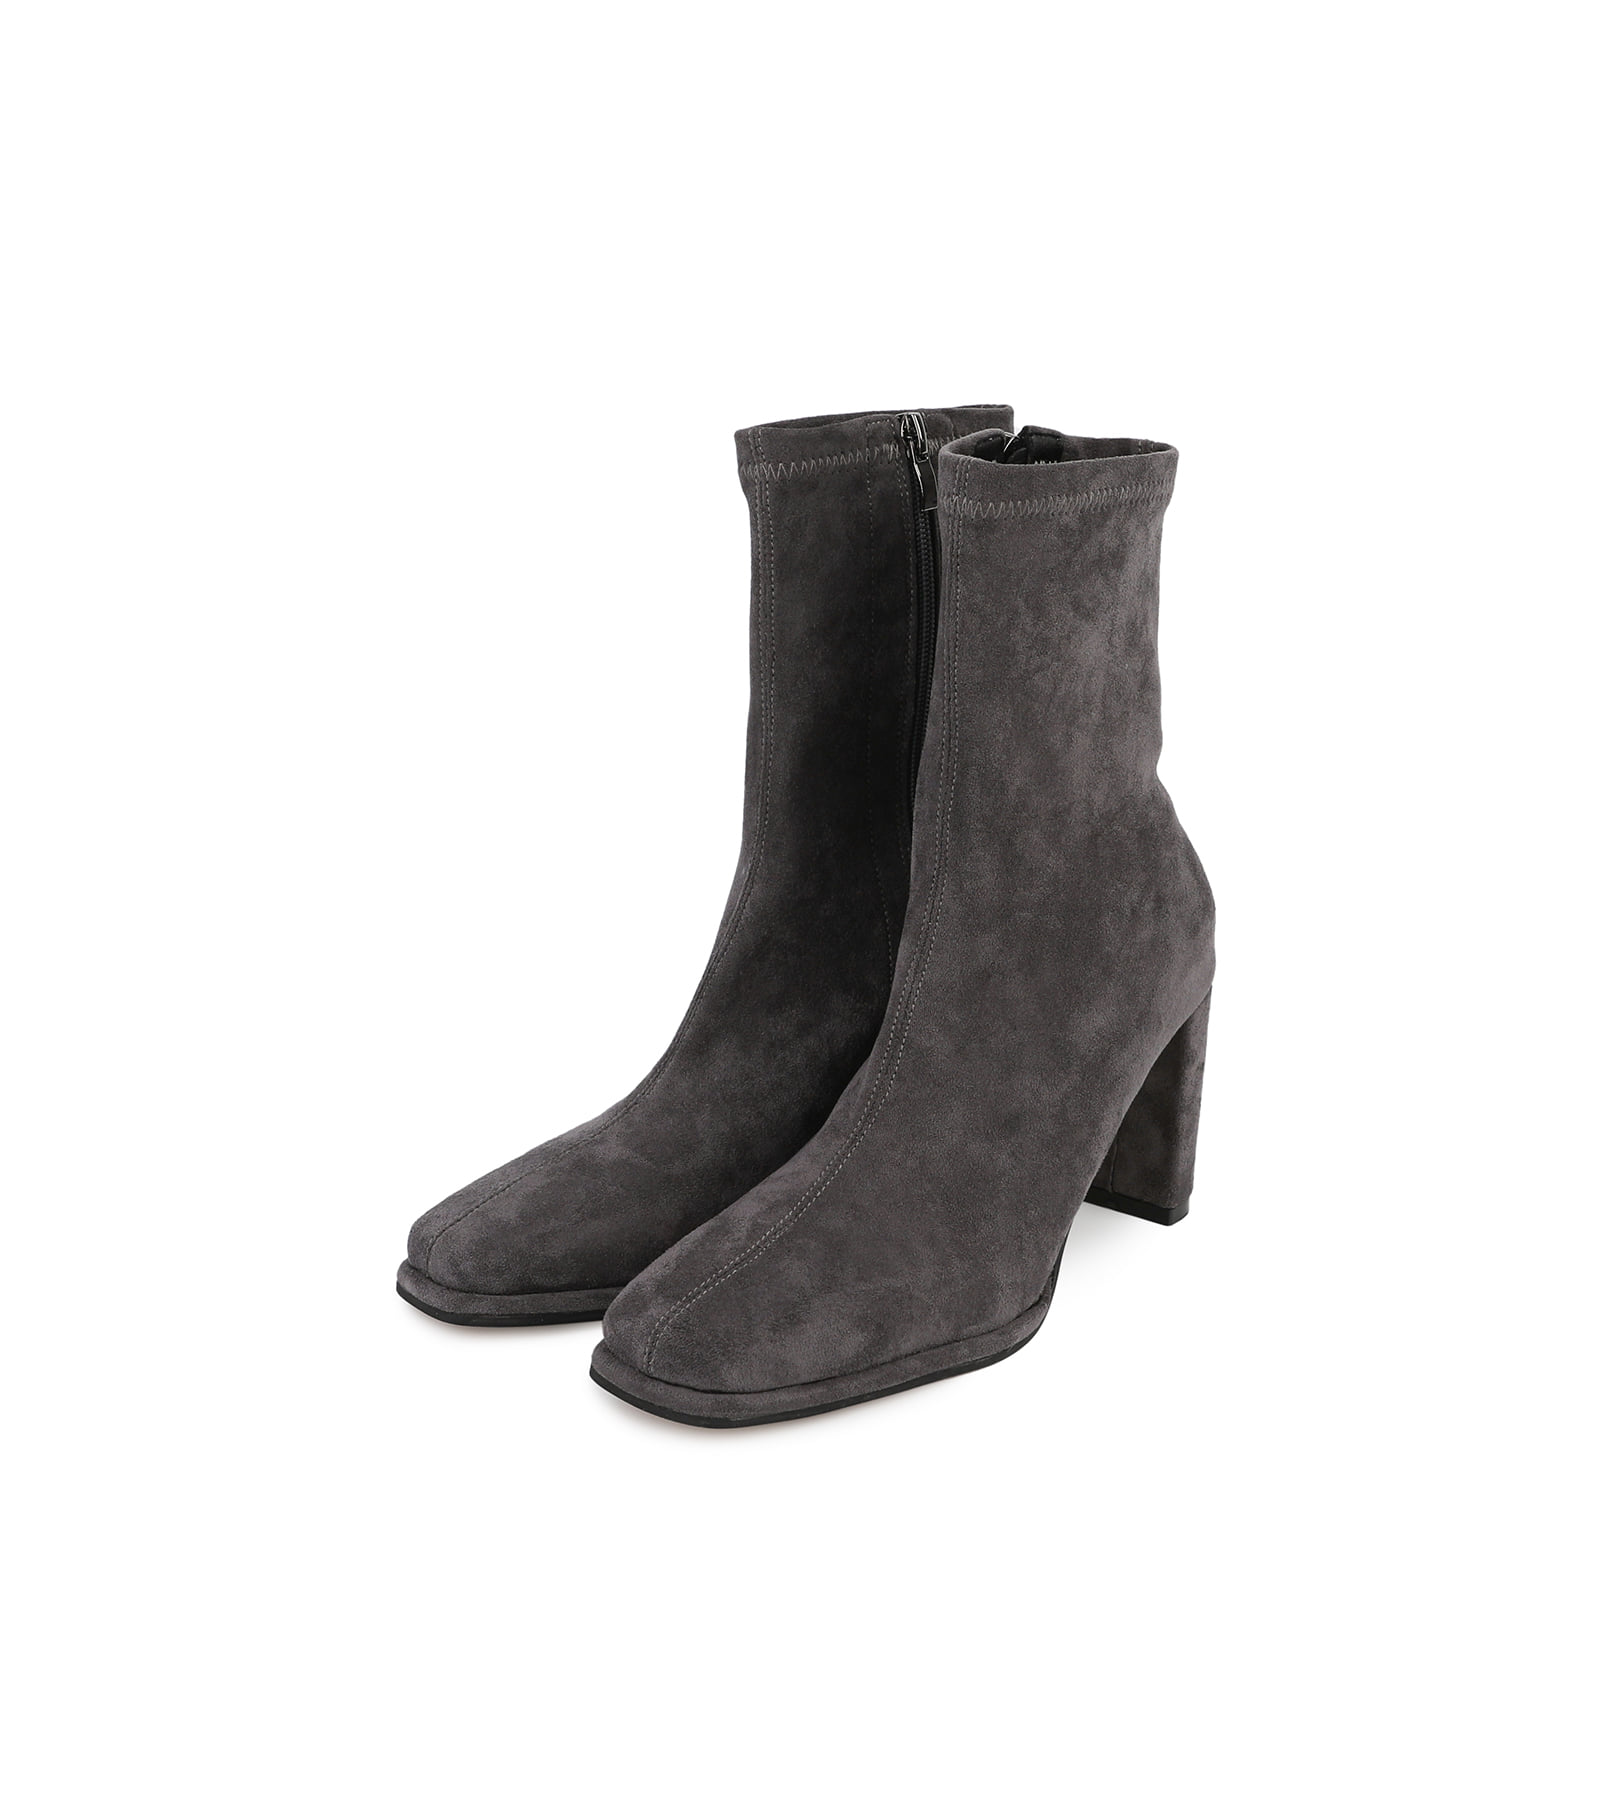 Penner suede high-heel ankle boots